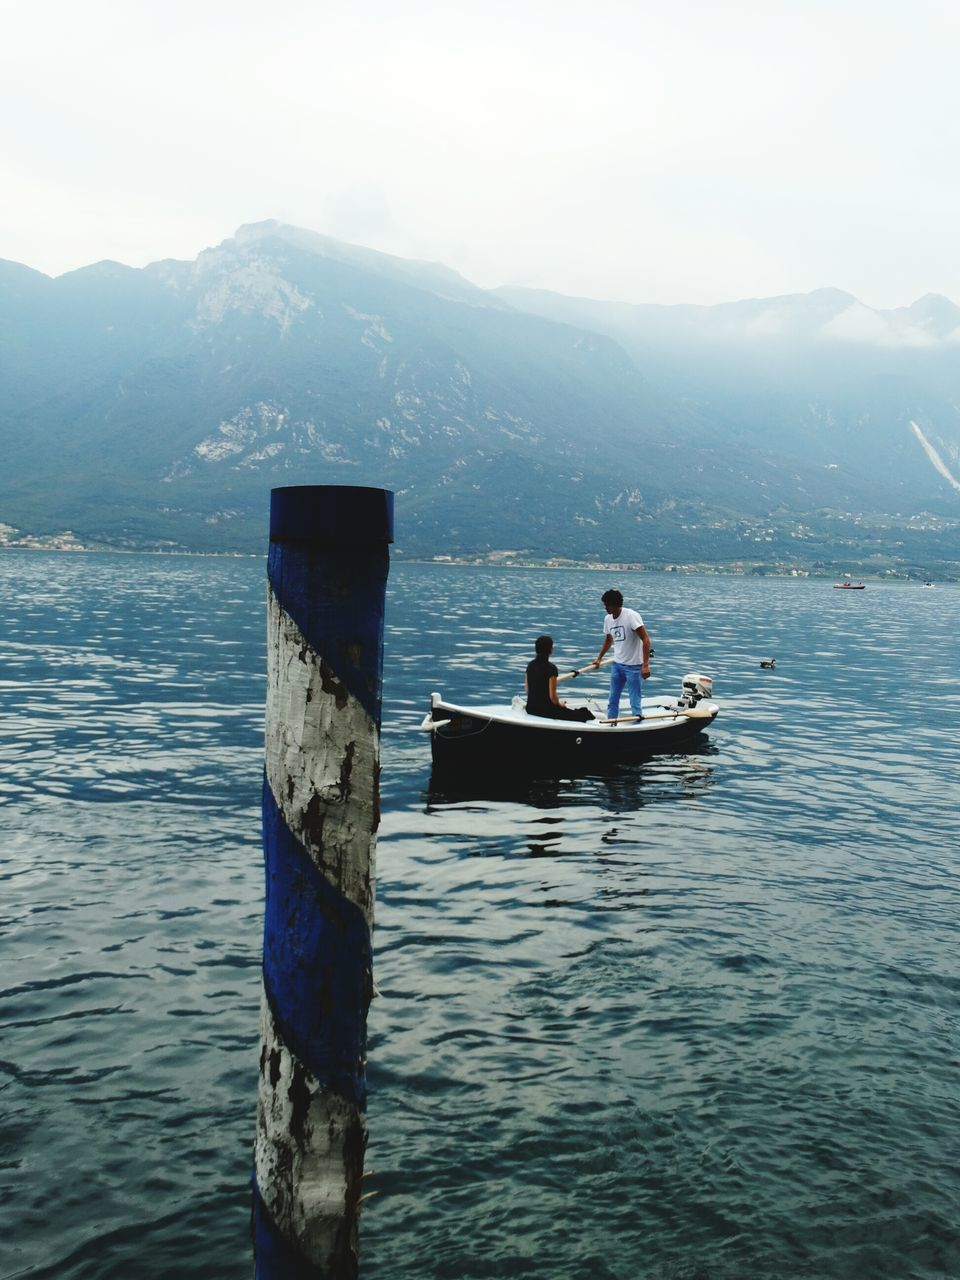 mountain, two people, nature, water, day, men, scenics, mountain range, real people, beauty in nature, outdoors, transportation, tranquility, leisure activity, sitting, togetherness, sea, nautical vessel, sky, full length, young women, young adult, adult, people